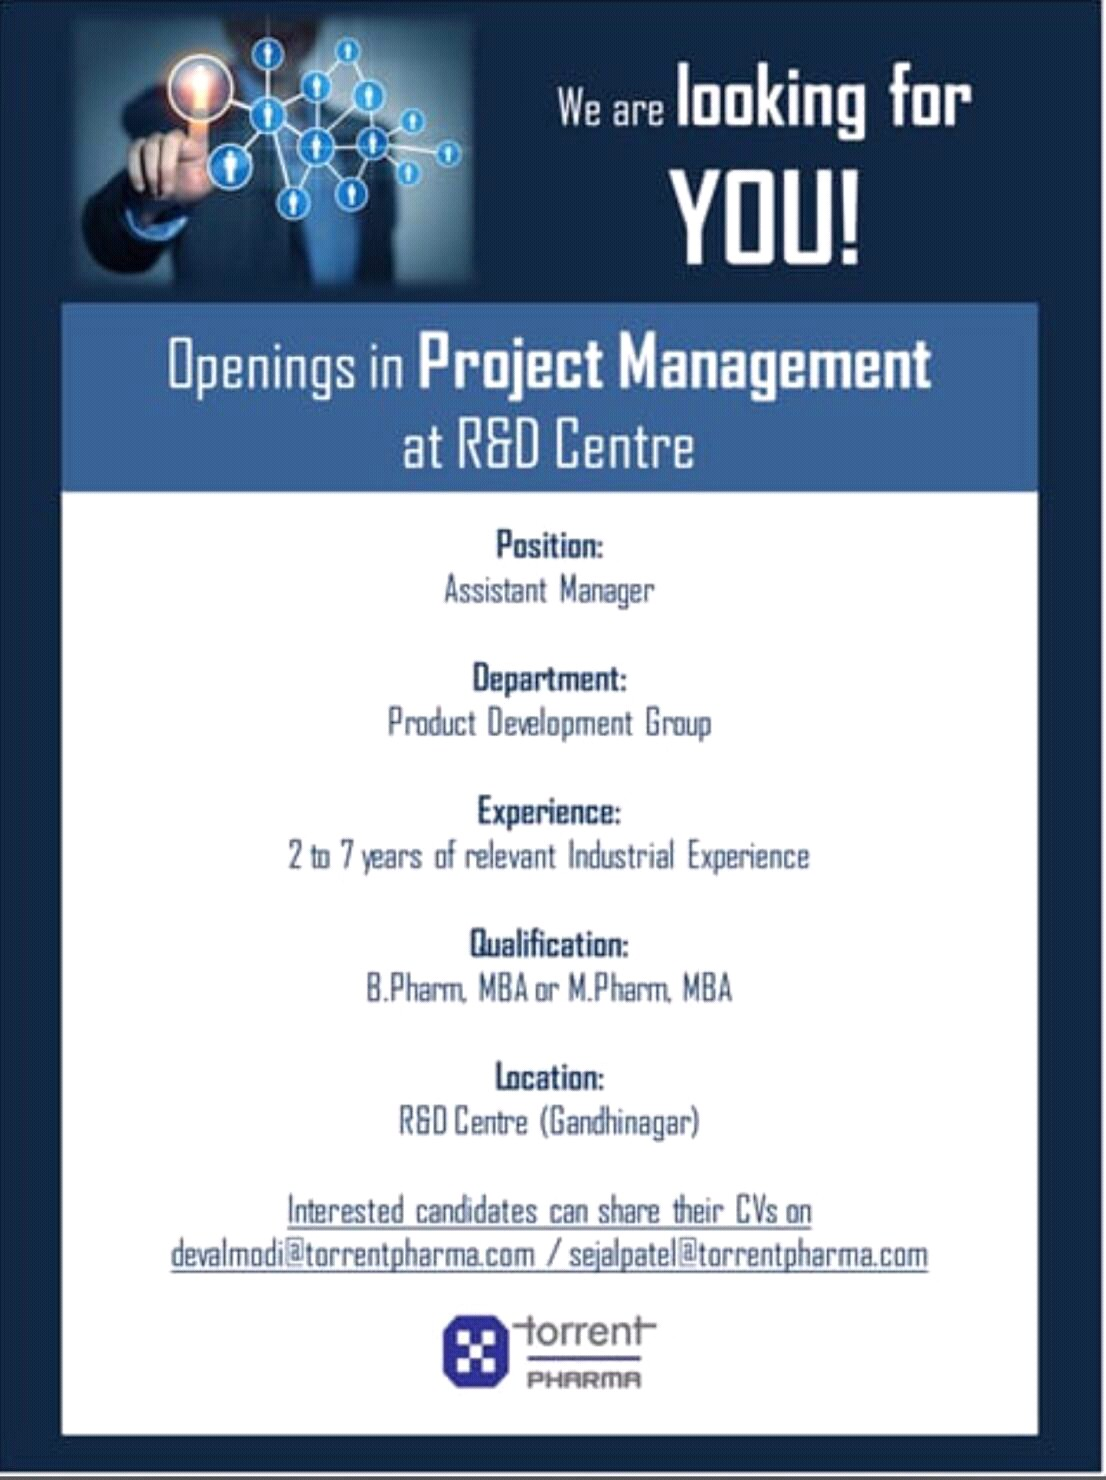 Torrent Pharma - Urgently Opening for Project Management | Apply CV Now